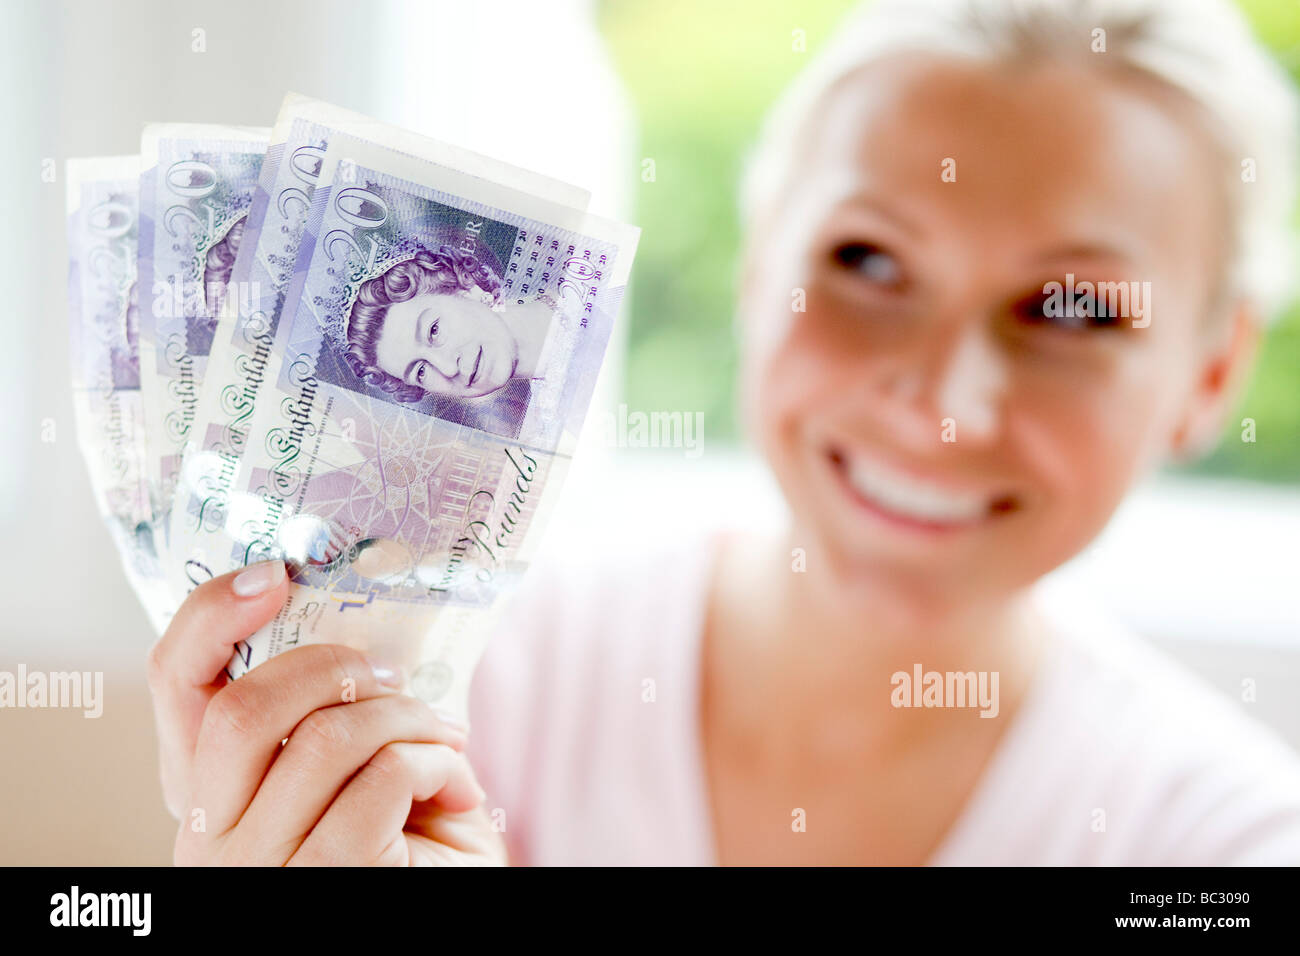 Woman holding 20 pound notes - Stock Image